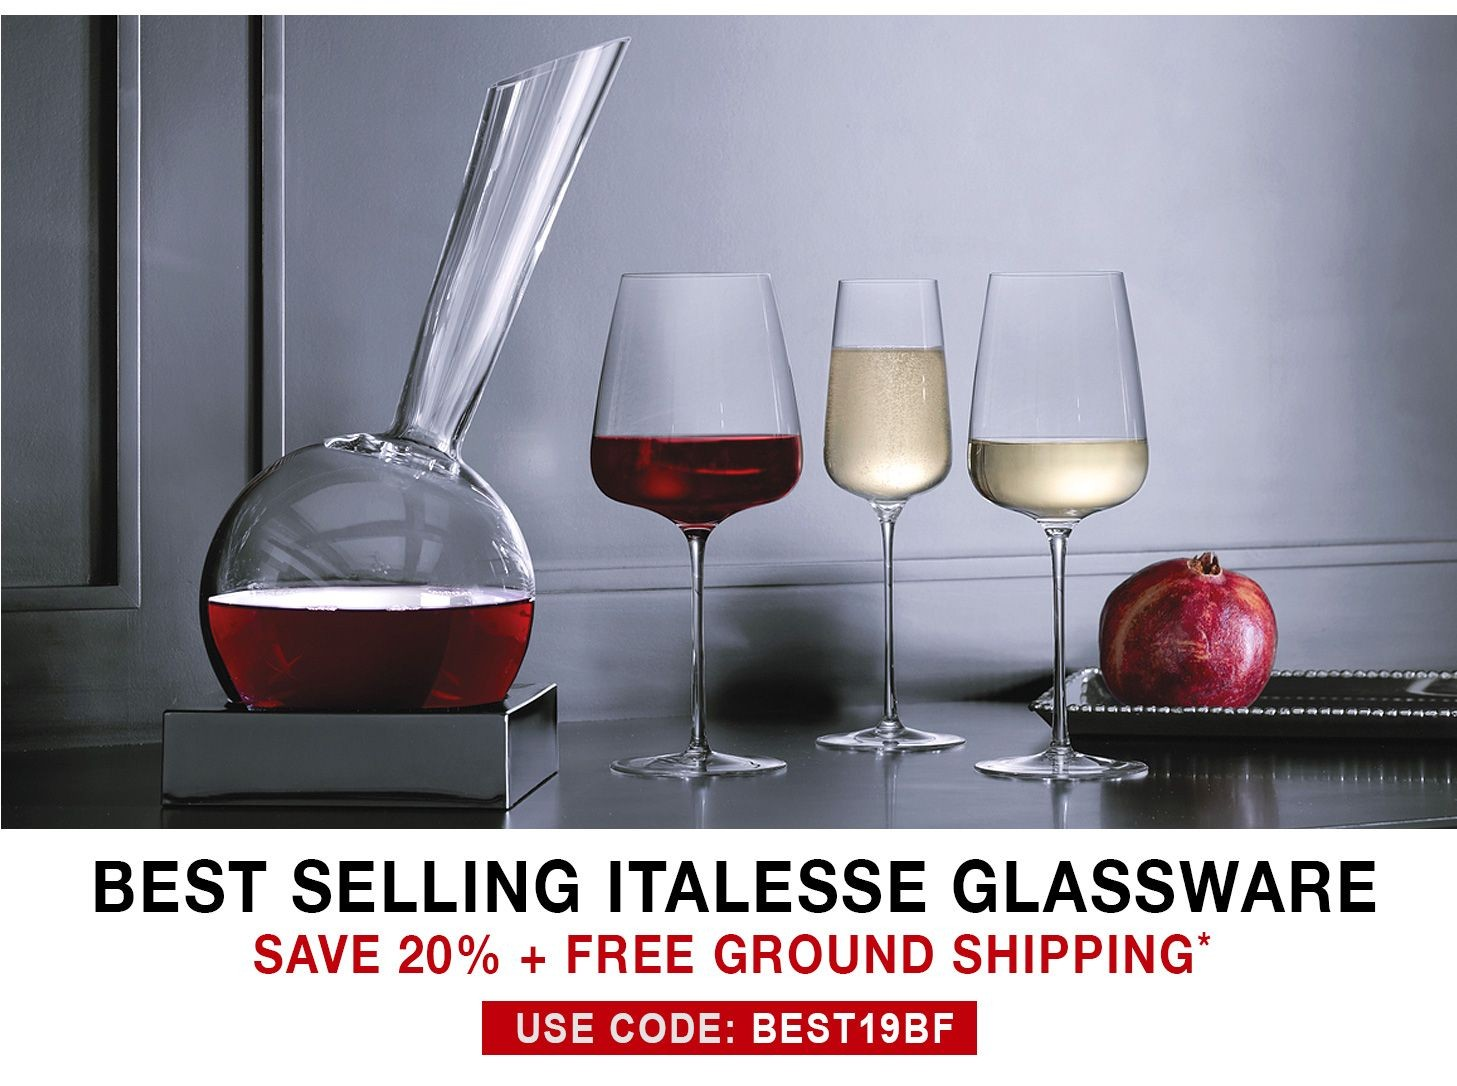 Italesse Glassware - 20% Off + Free Ground Shipping - Use Code BEST19BF